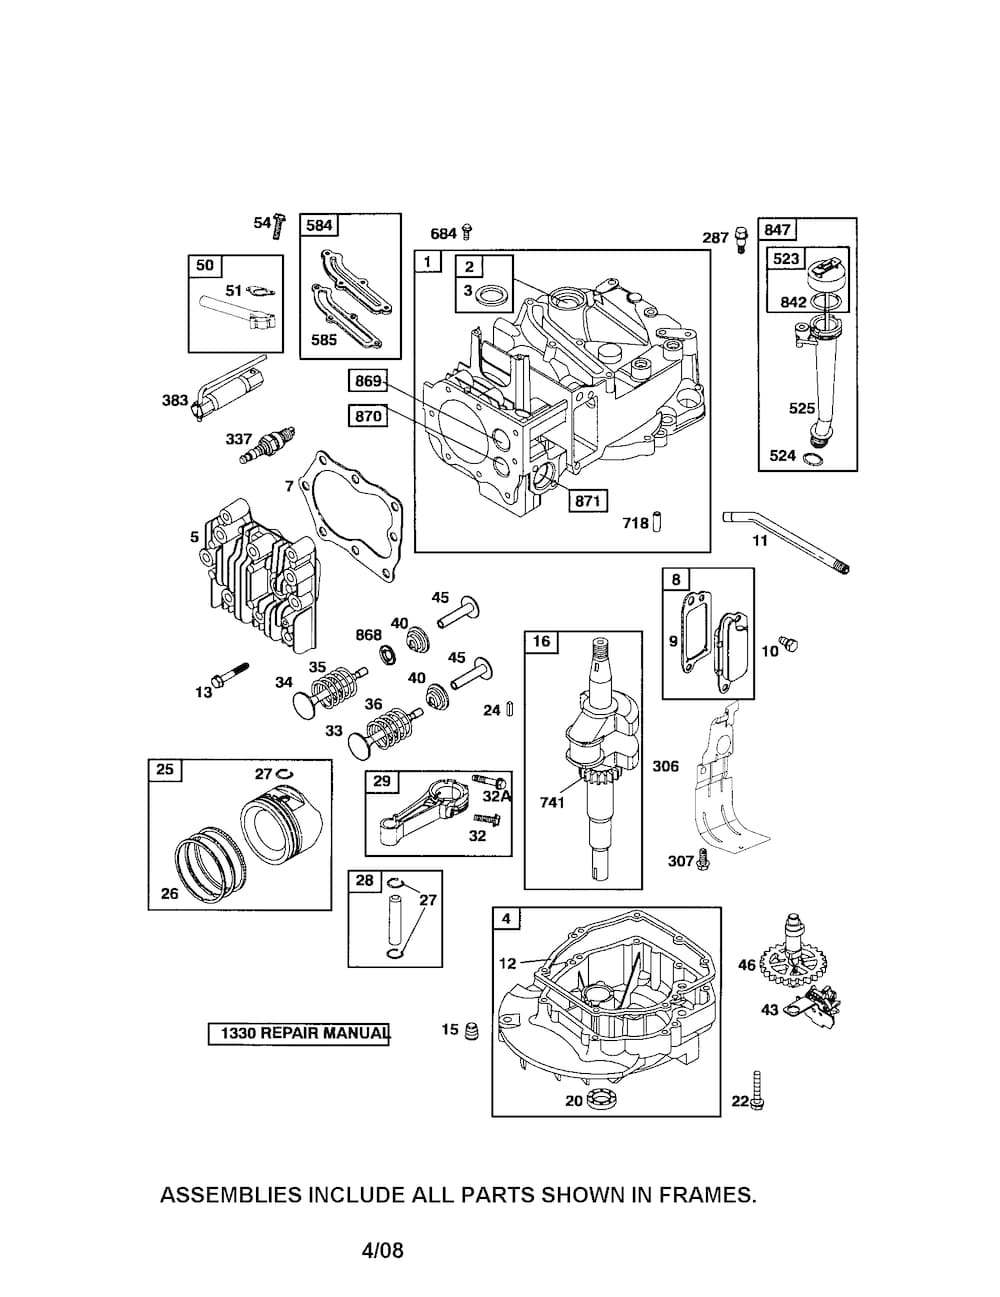 john deere js20 manual